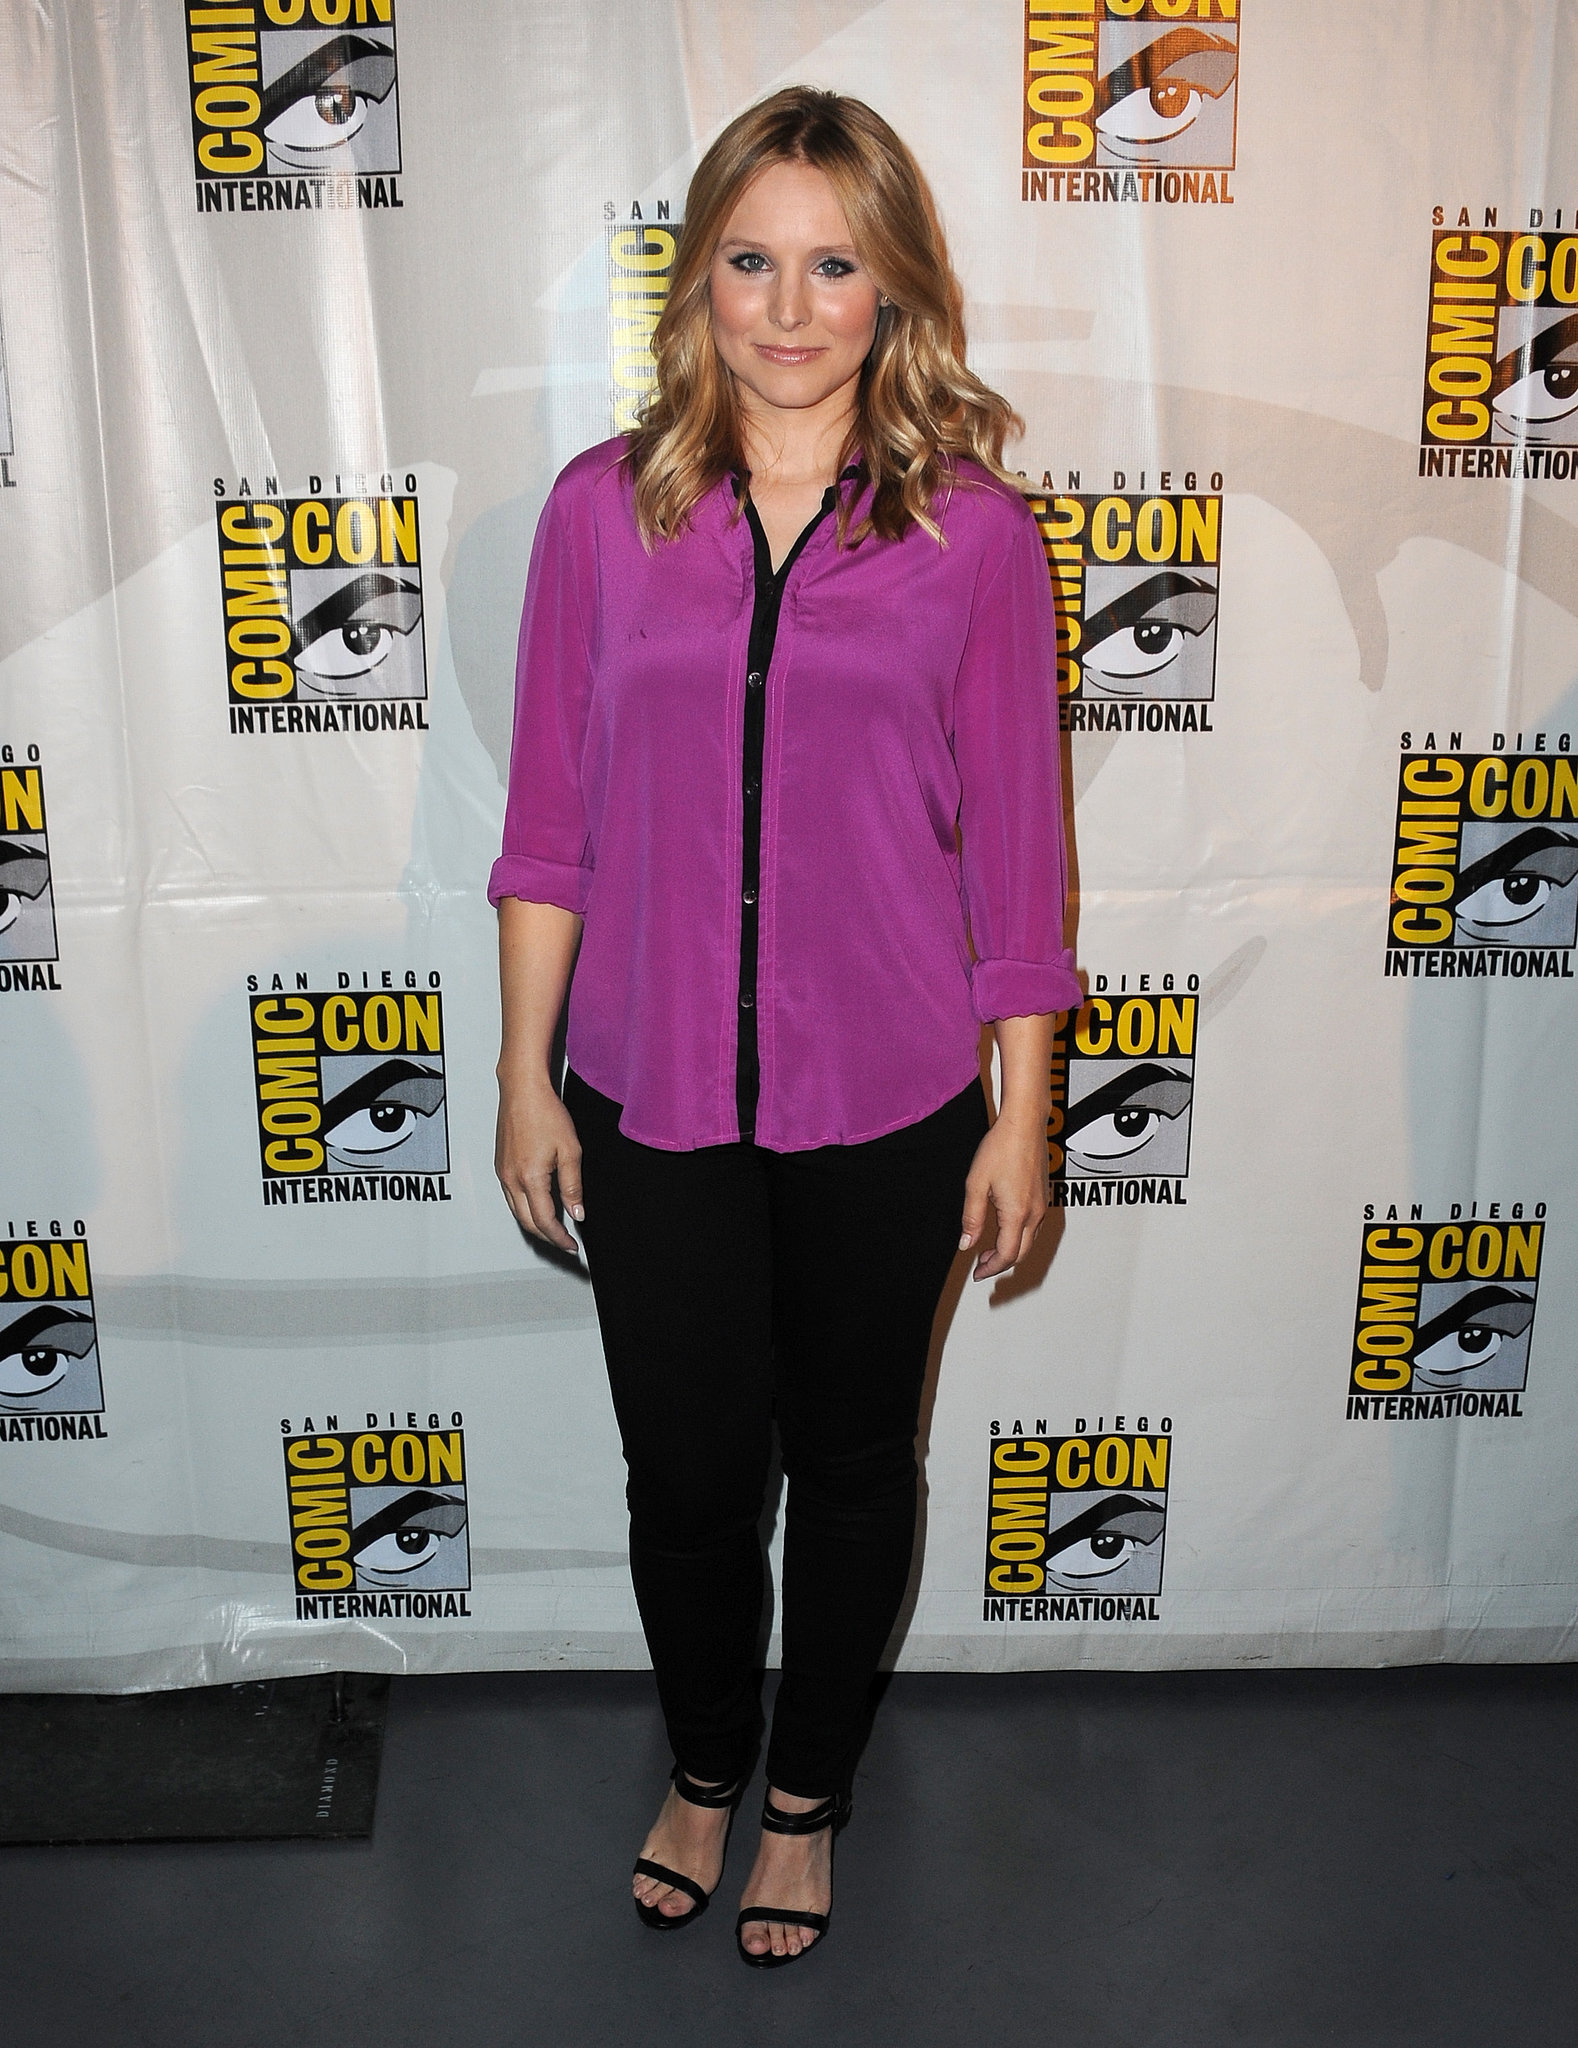 Kristen Bell looked like a gem in her jewel-toned shirt she chose for a Veronica Mars Q&A.